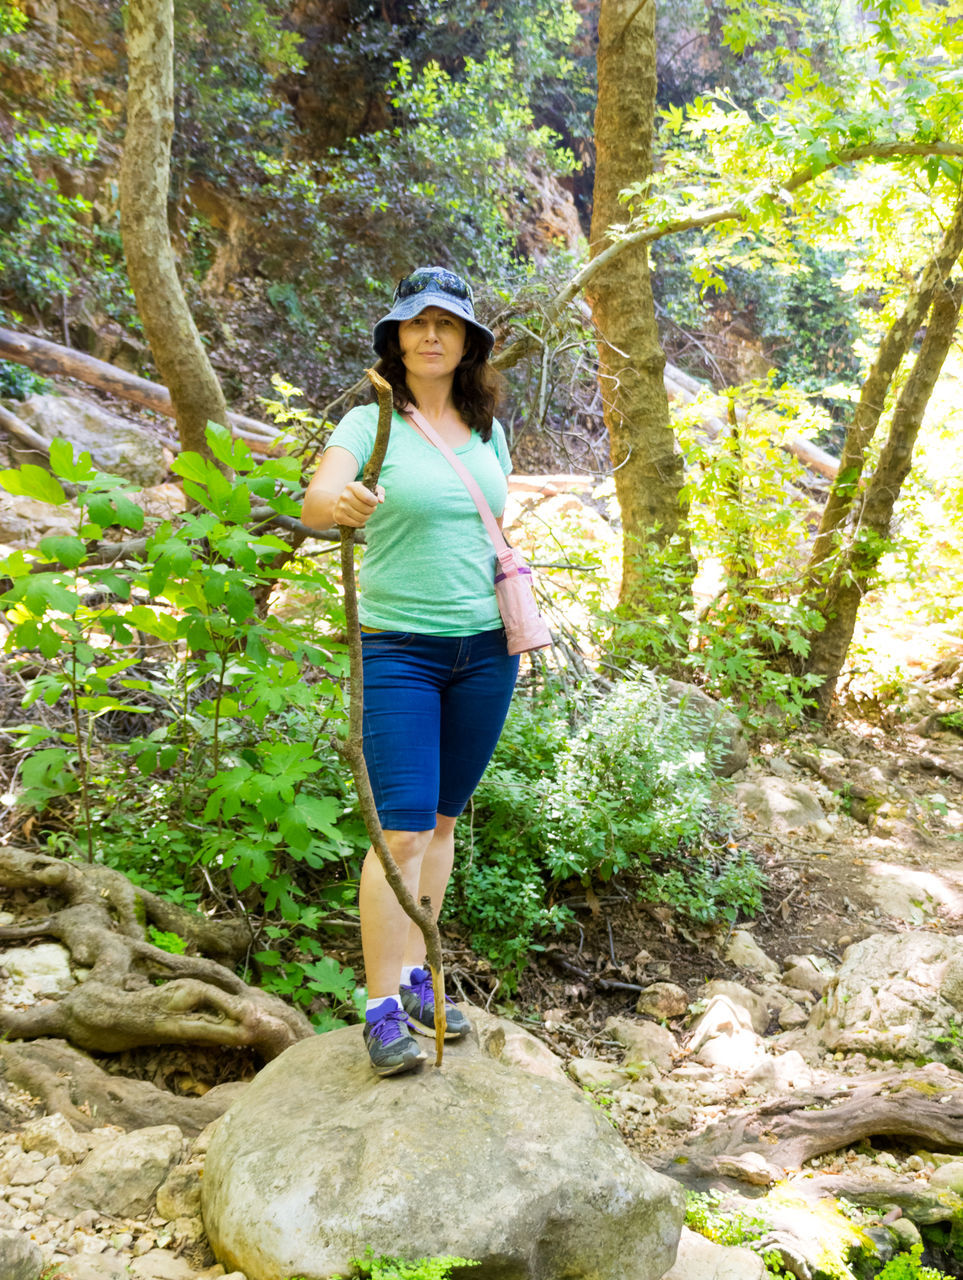 Full Length Portrait Of Woman With Stick Standing On Rock In Forest